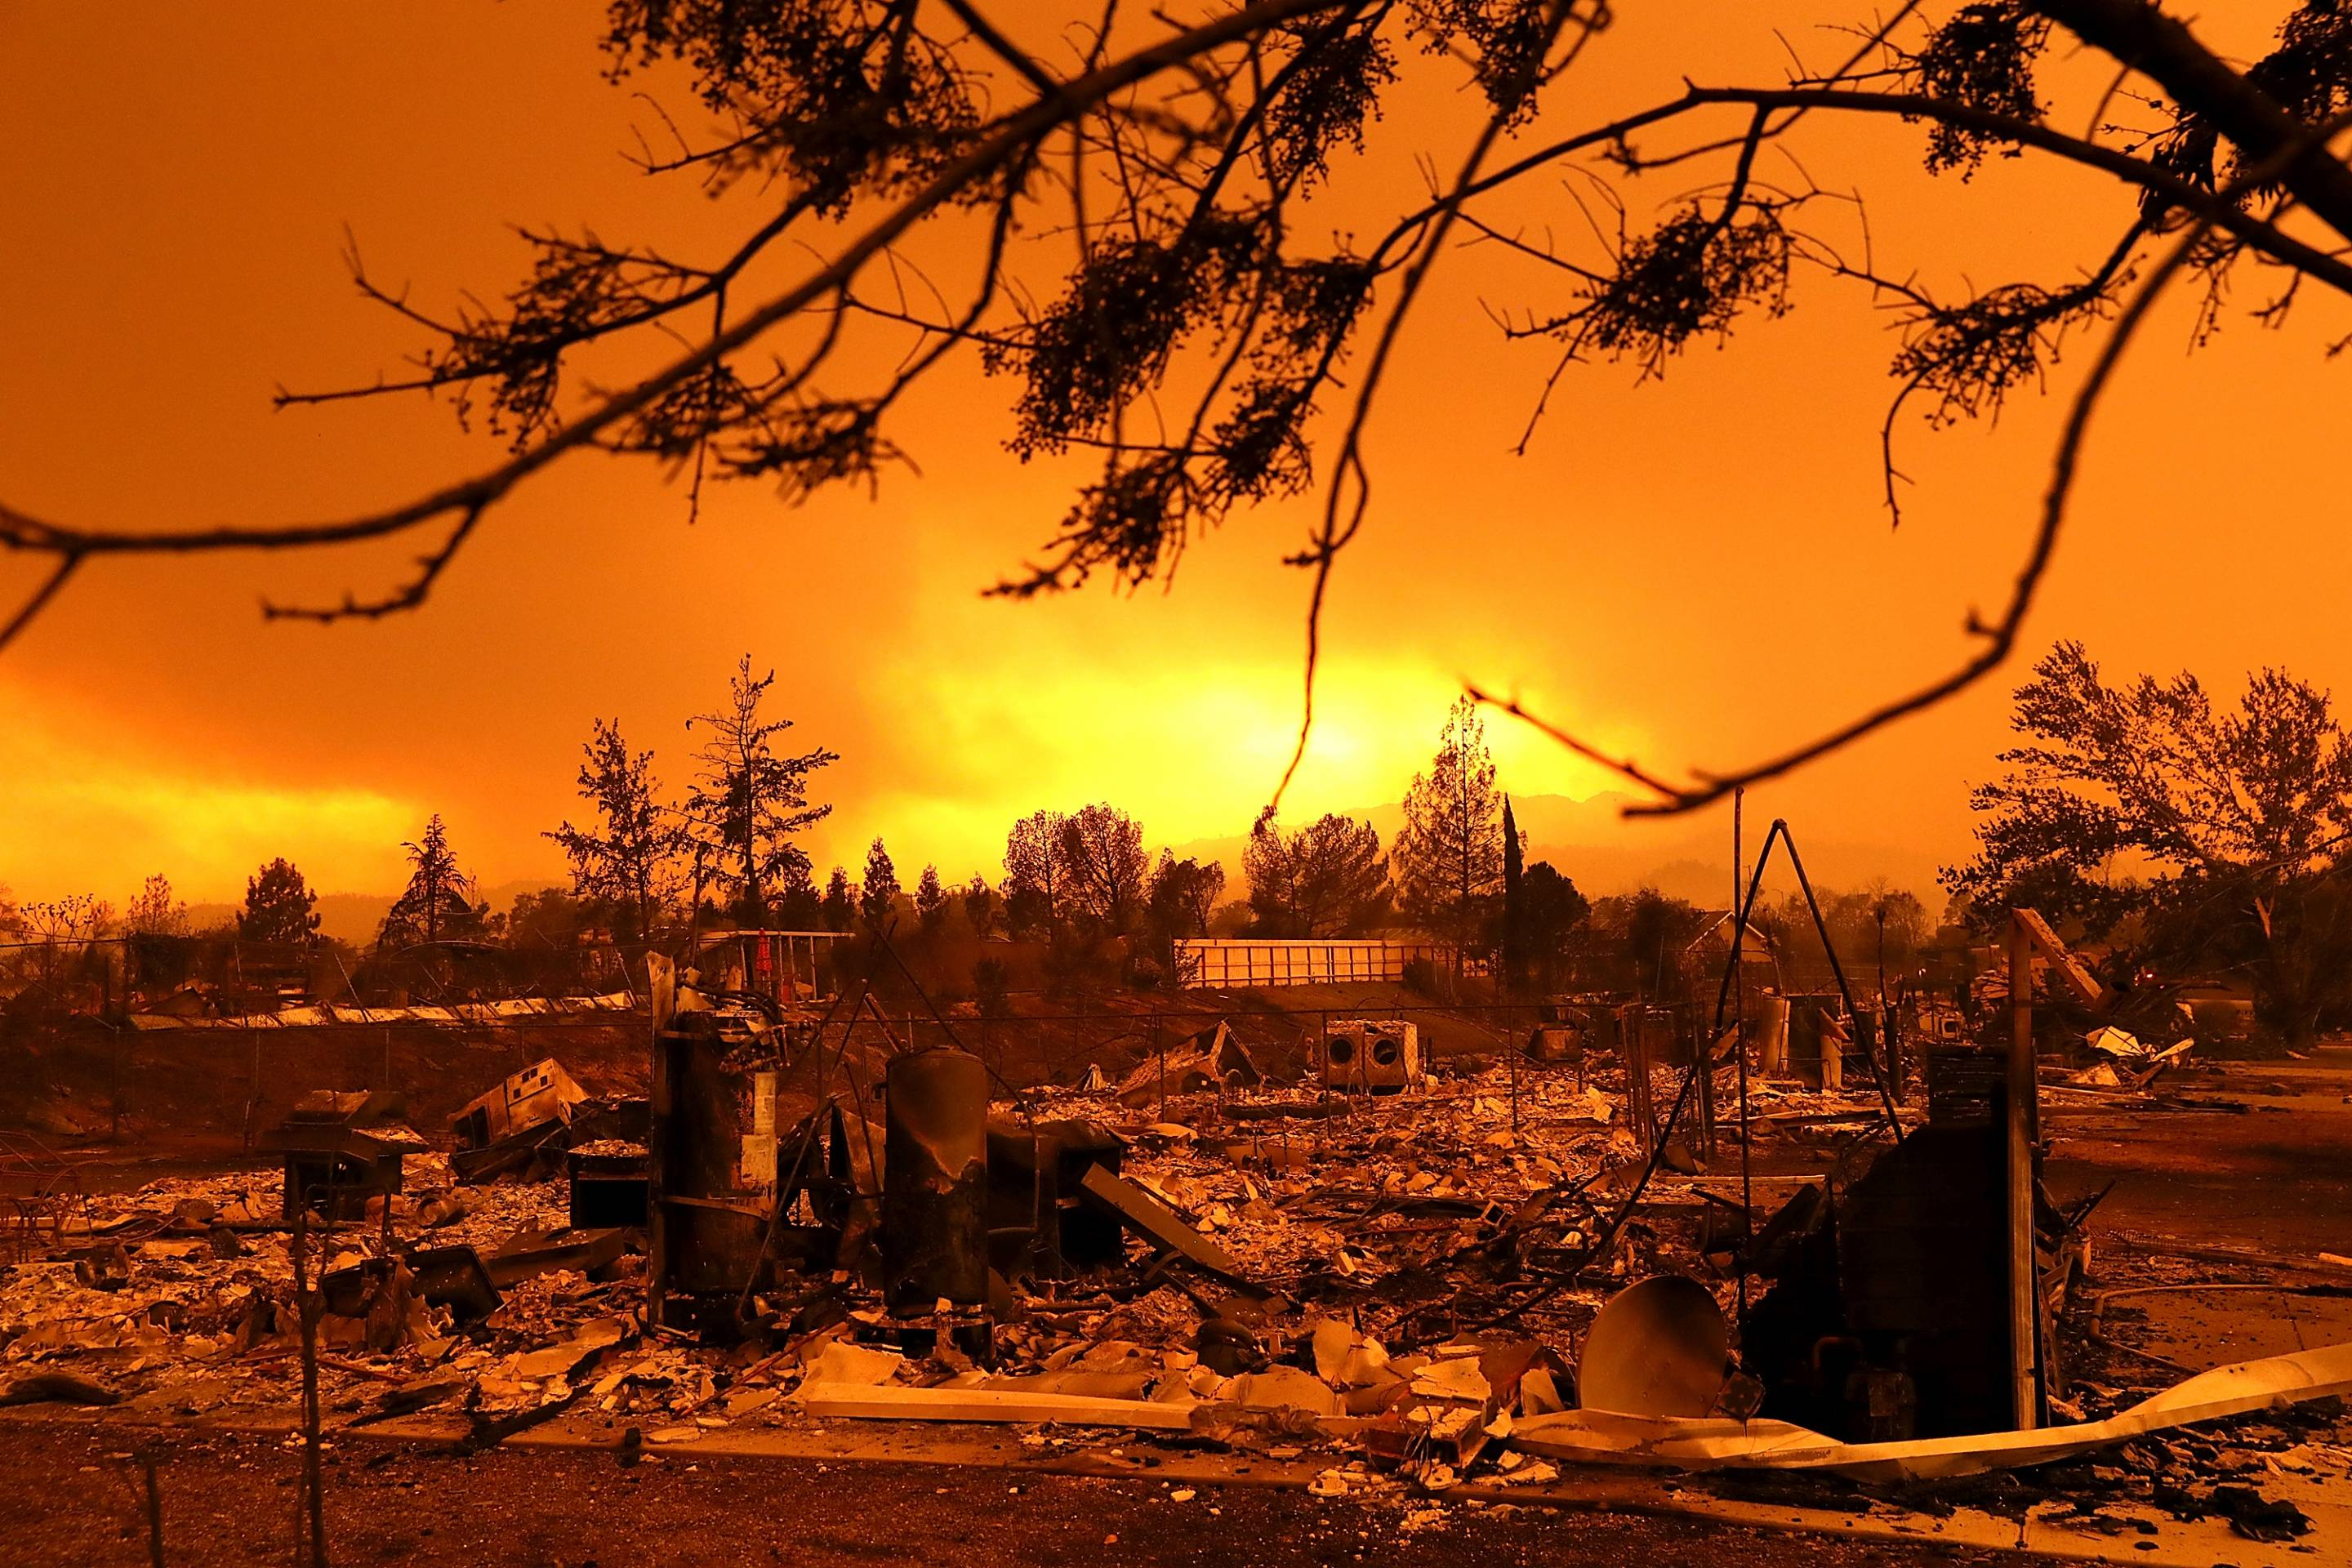 California Fires Map: Get The Latest Updates From Google | Fortune - Fire Watch California Map